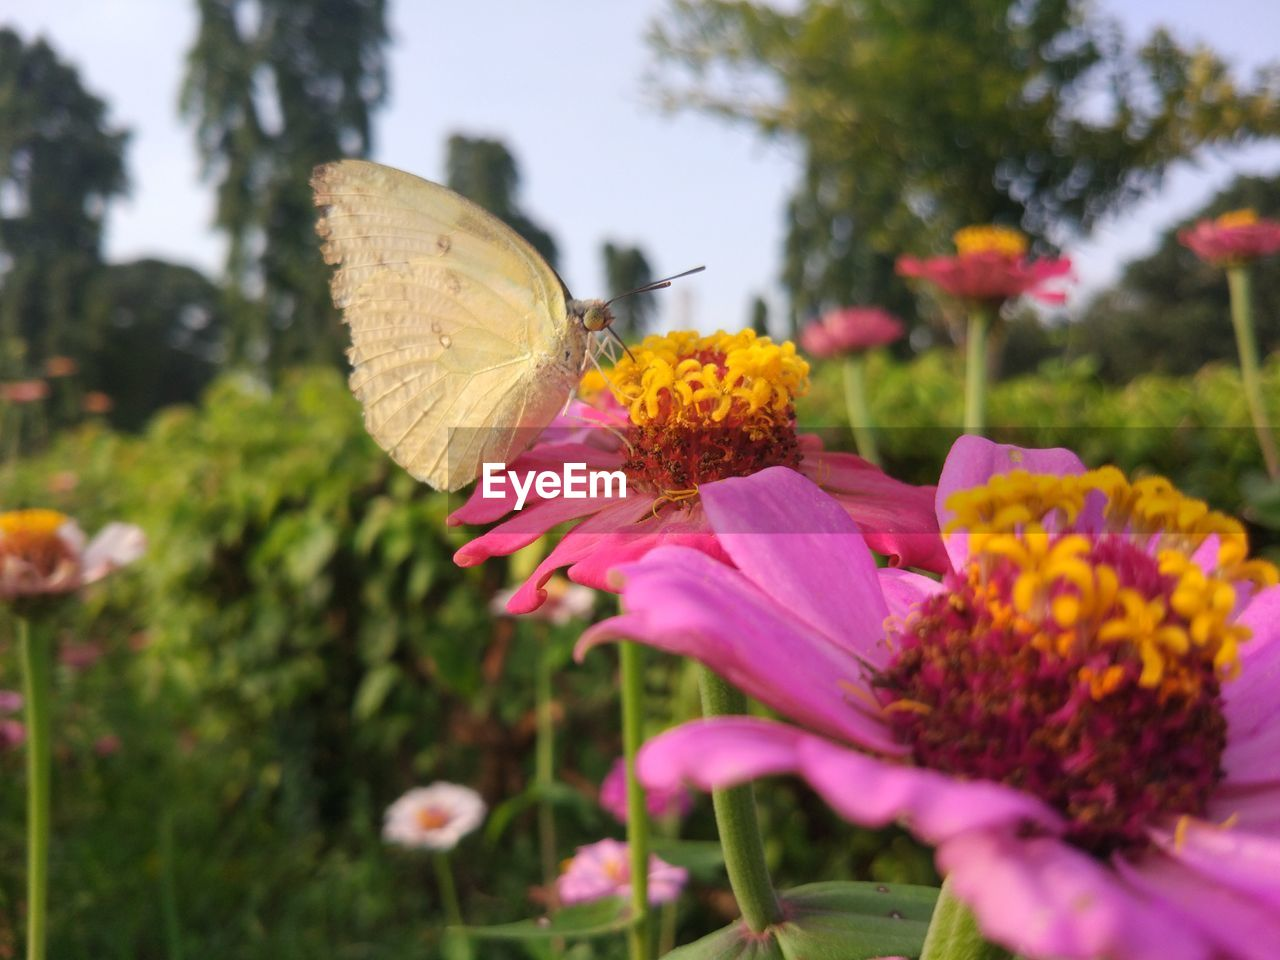 flower, growth, fragility, nature, freshness, plant, petal, focus on foreground, beauty in nature, animal themes, insect, no people, animals in the wild, day, outdoors, one animal, pink color, flower head, park - man made space, close-up, blooming, butterfly - insect, yellow, pollination, eastern purple coneflower